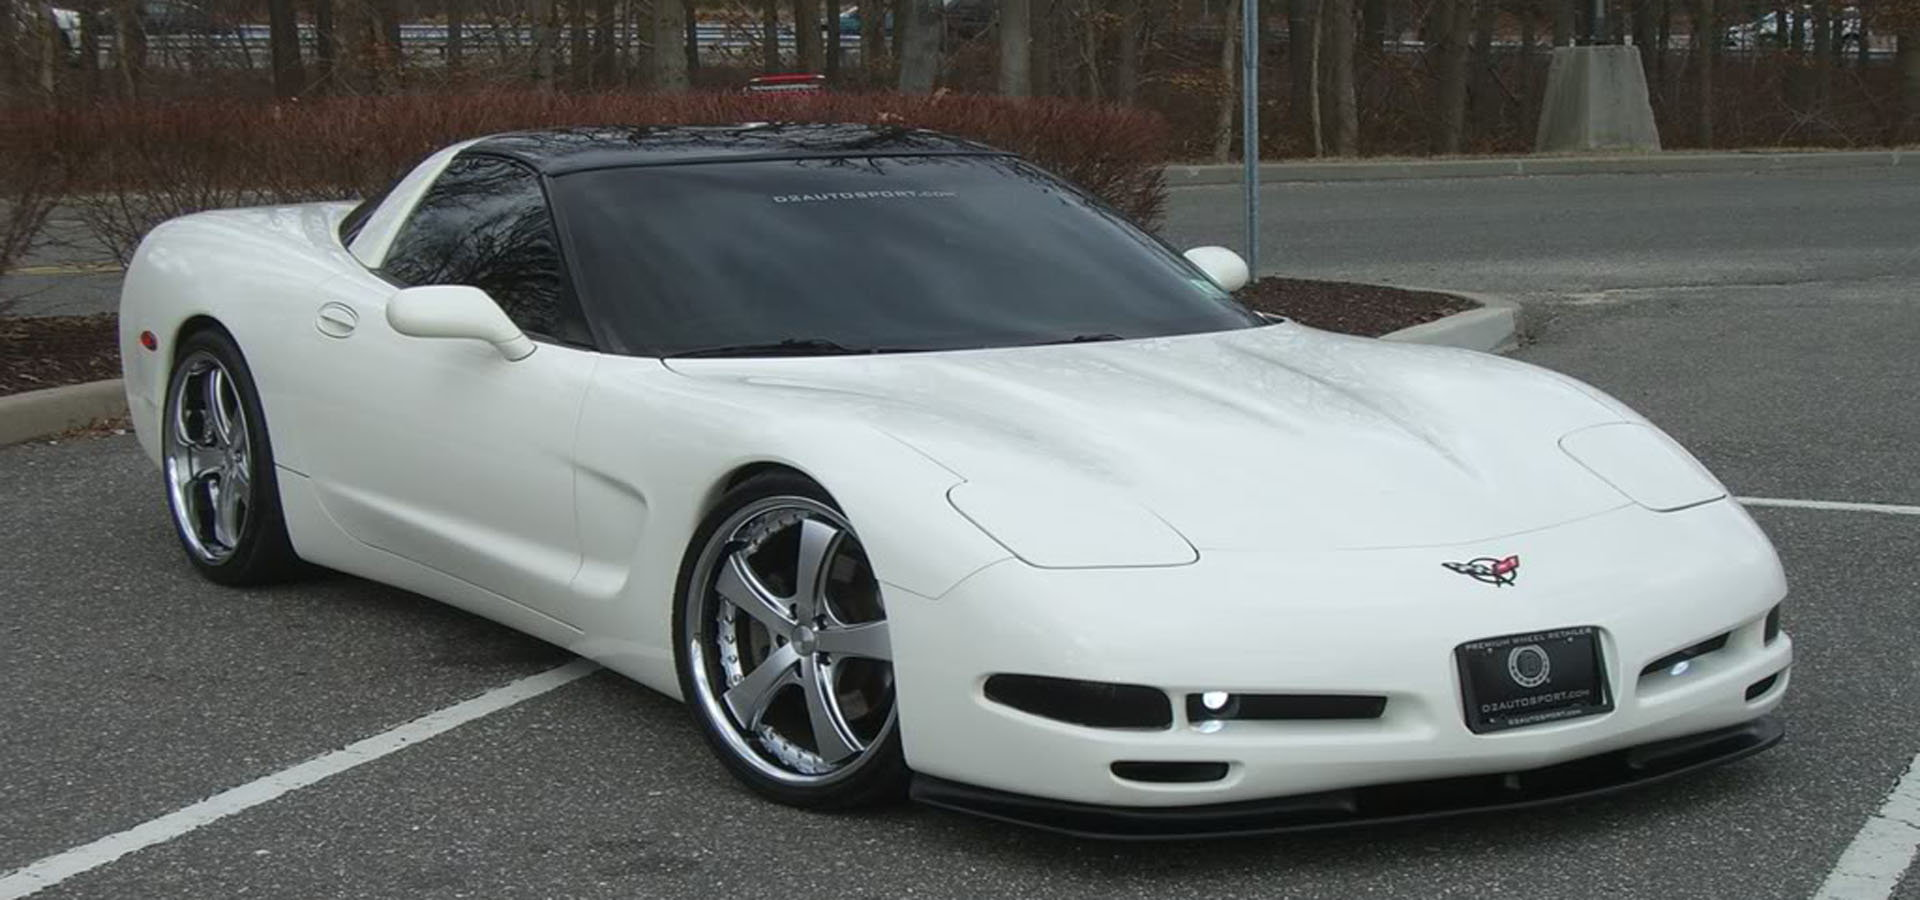 Corvette C4 Vs C5 Corvetteforum